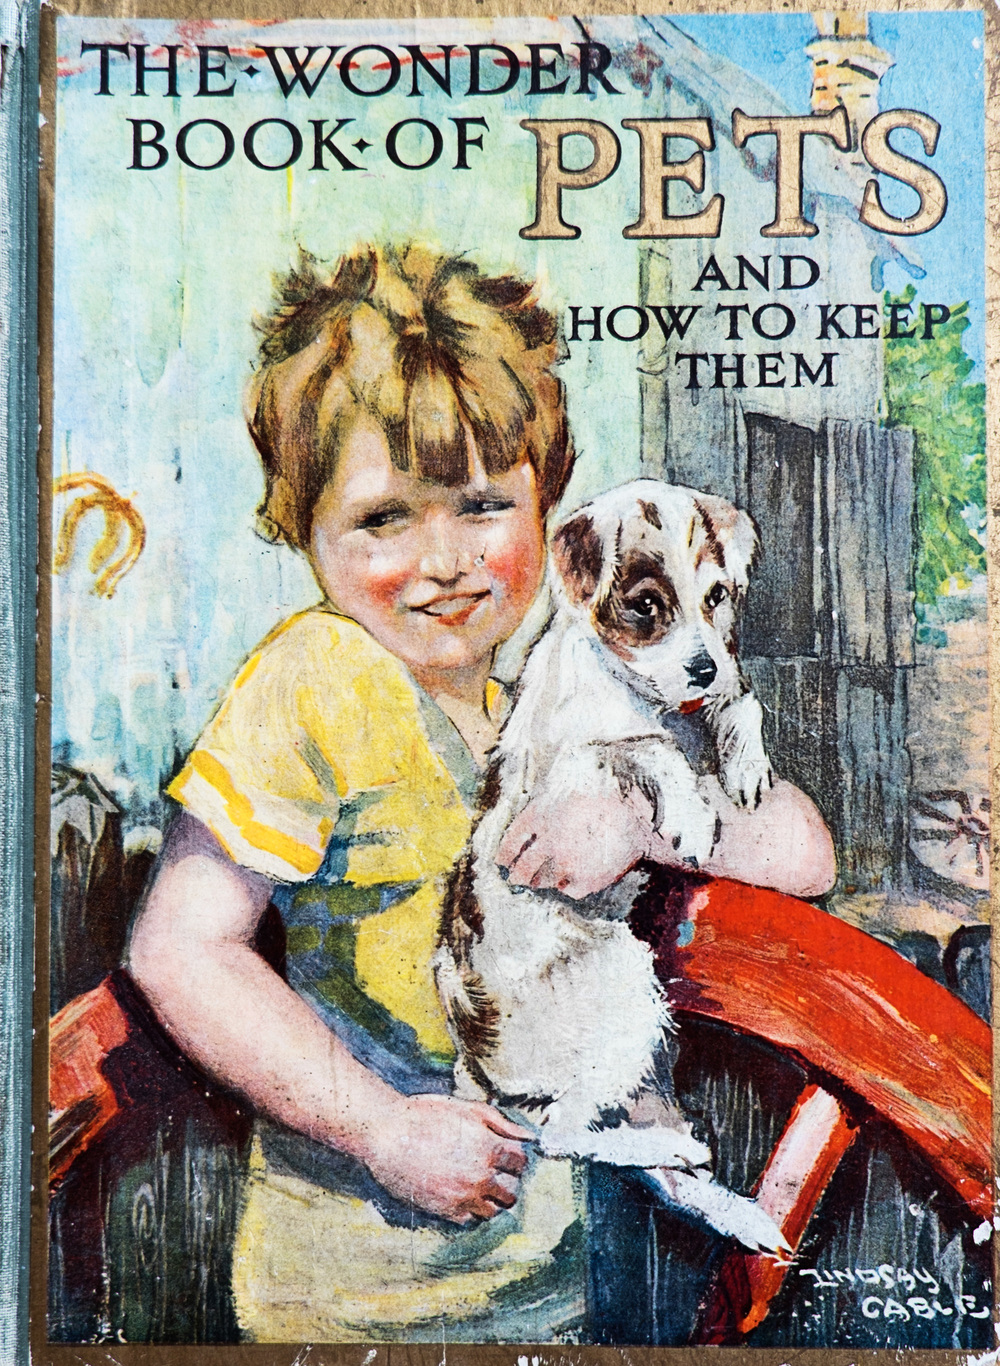 The Wonder Book Of Pets and how to keep them